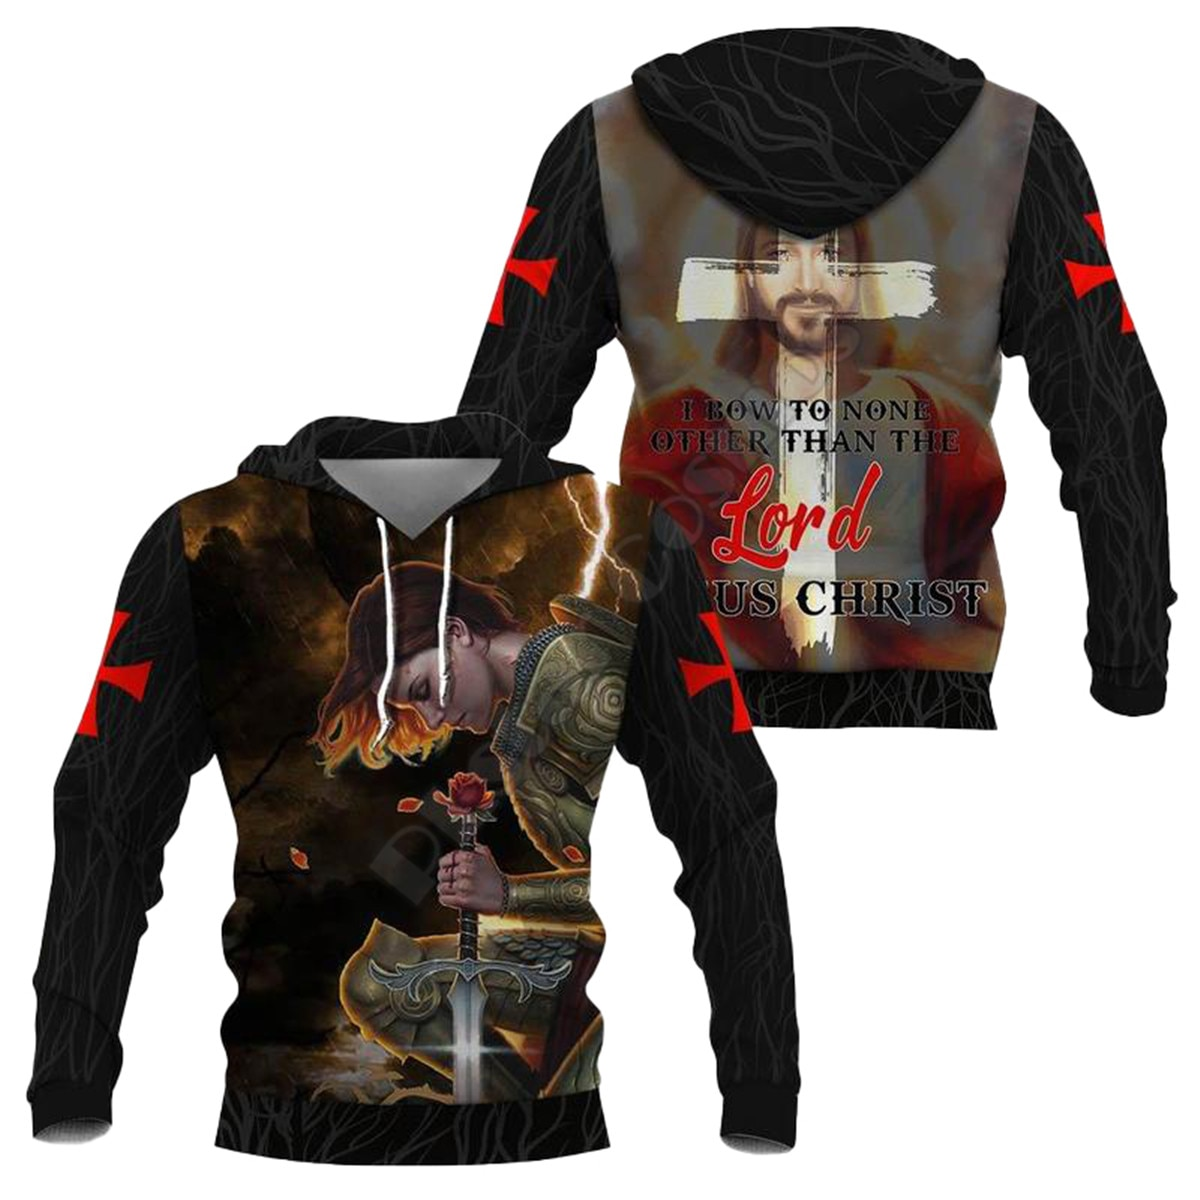 Knight Templar Armor 3D All Over Printed Hoodies Fashion Pullover Men For Women Sweatshirts Sweater Cosplay Costumes 09